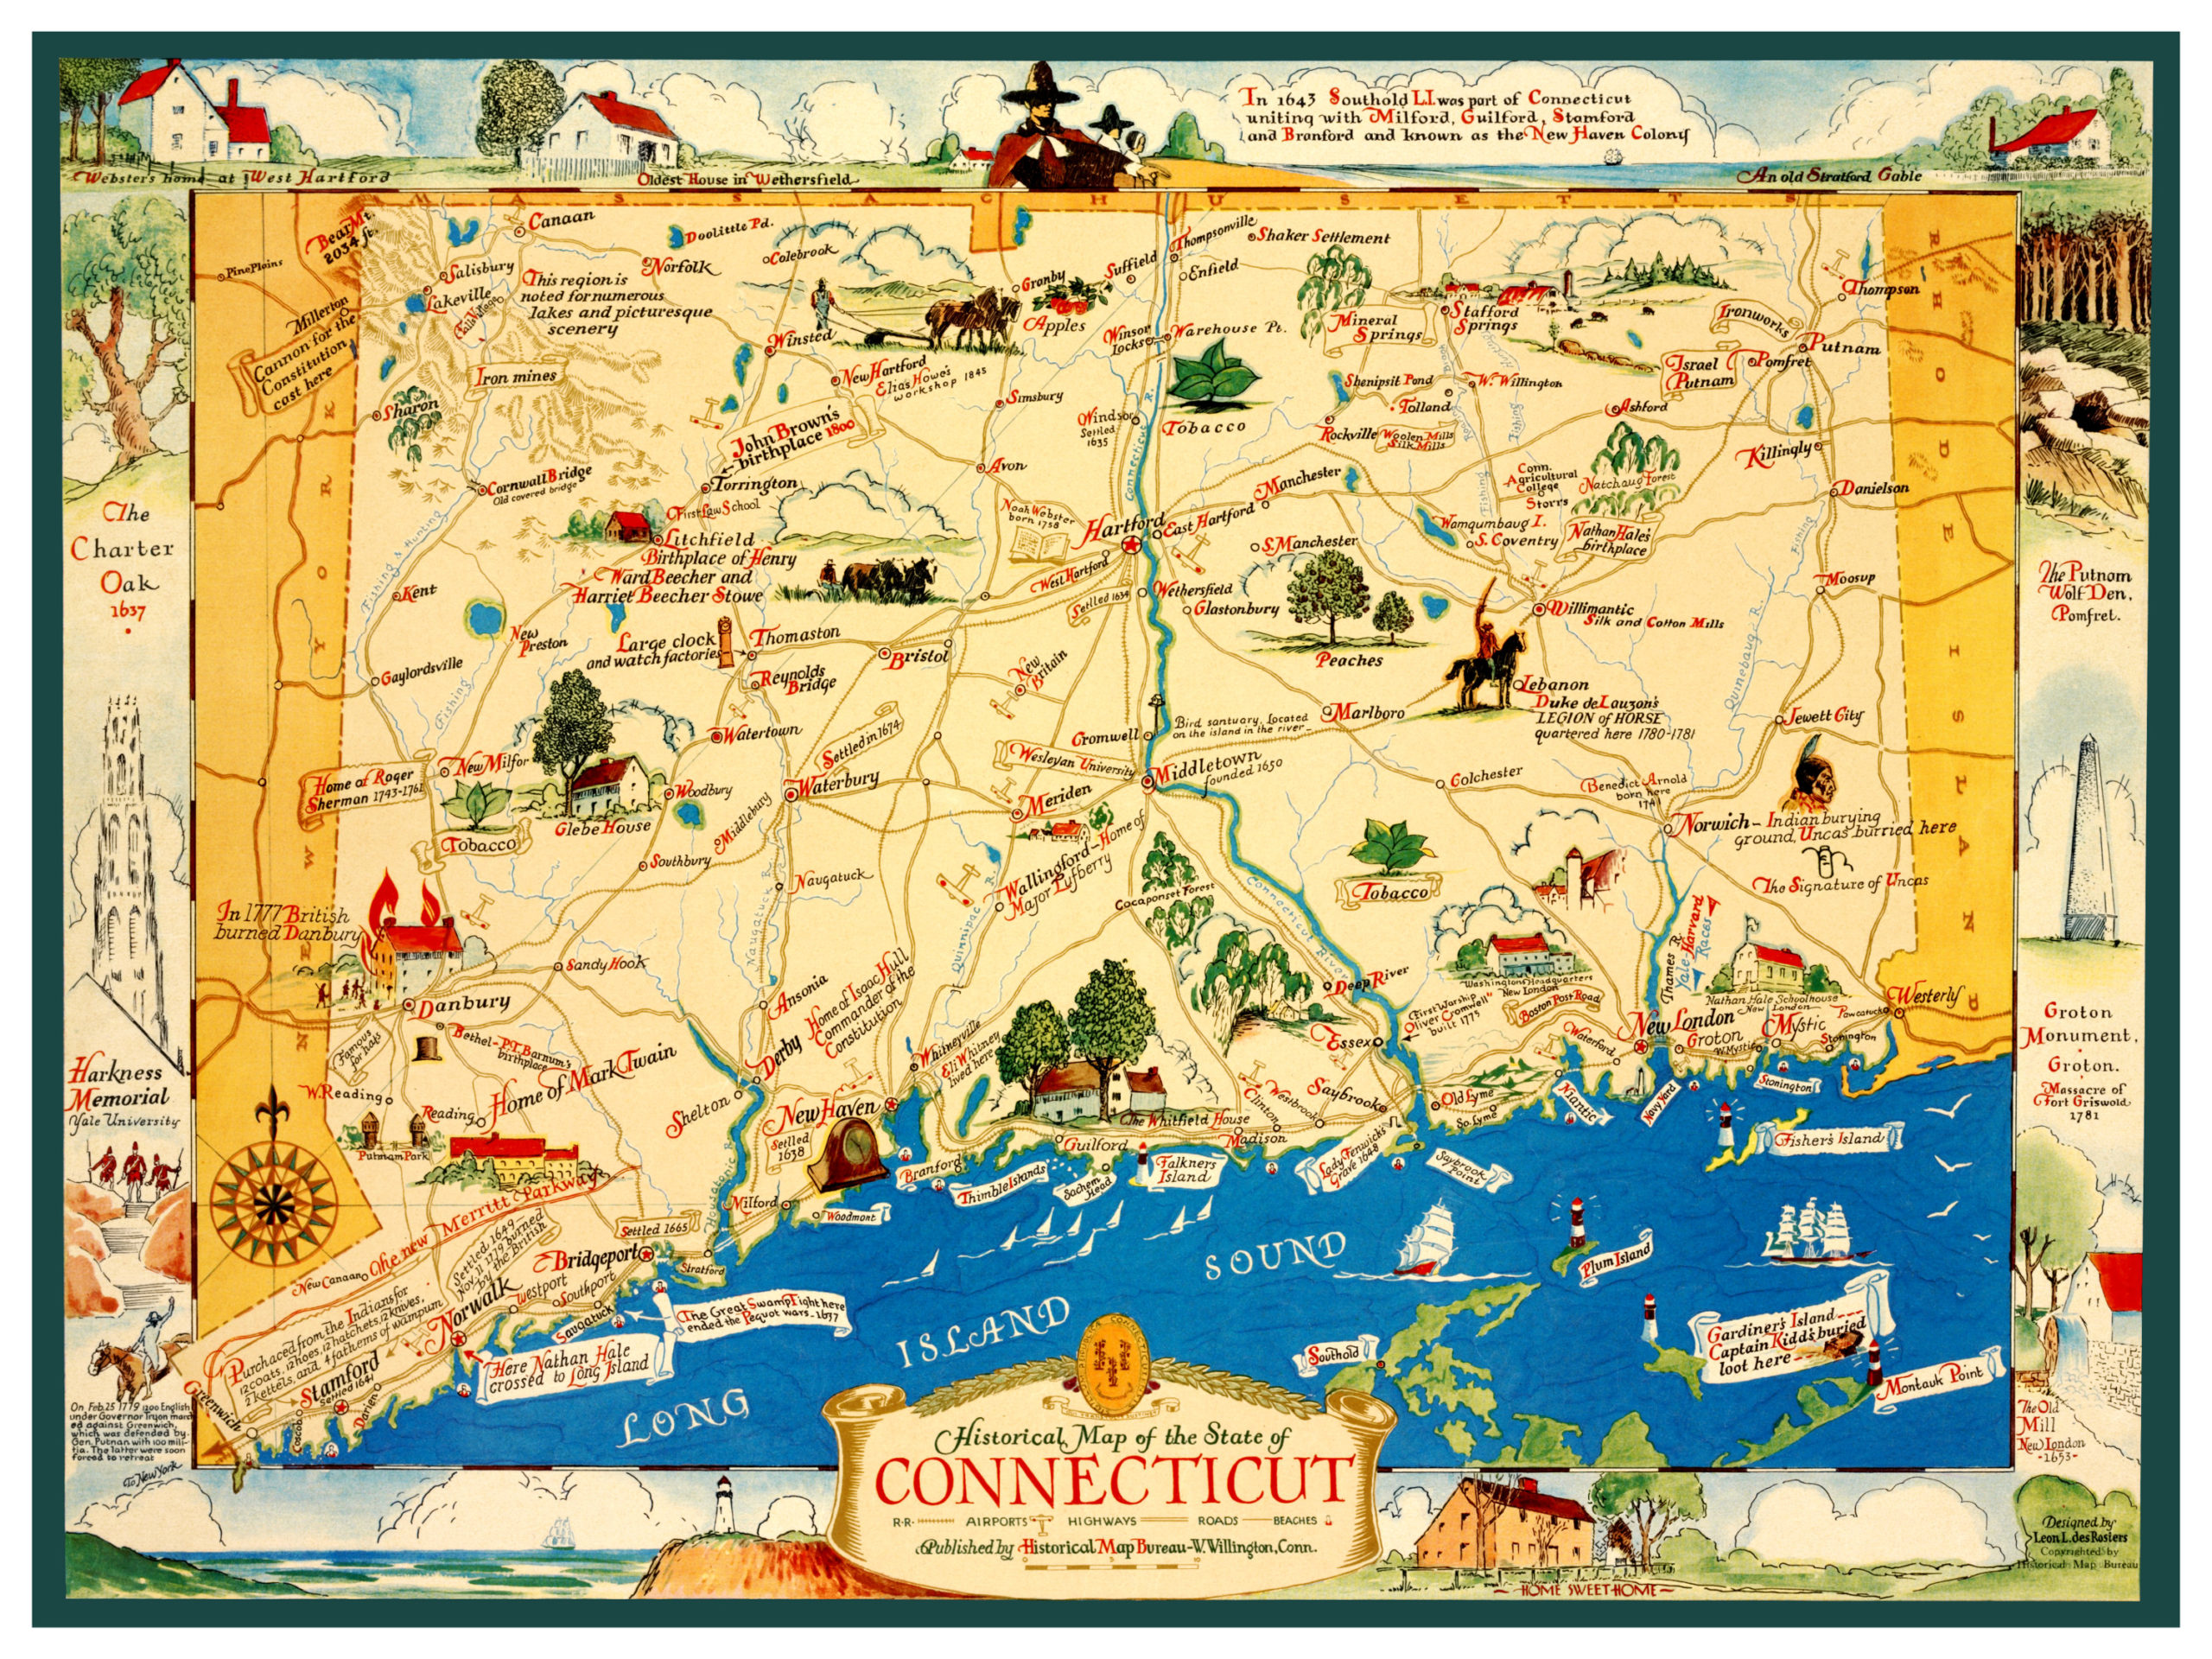 Vintage map featuring historical Connecticut facts and trivia - KNOWOL